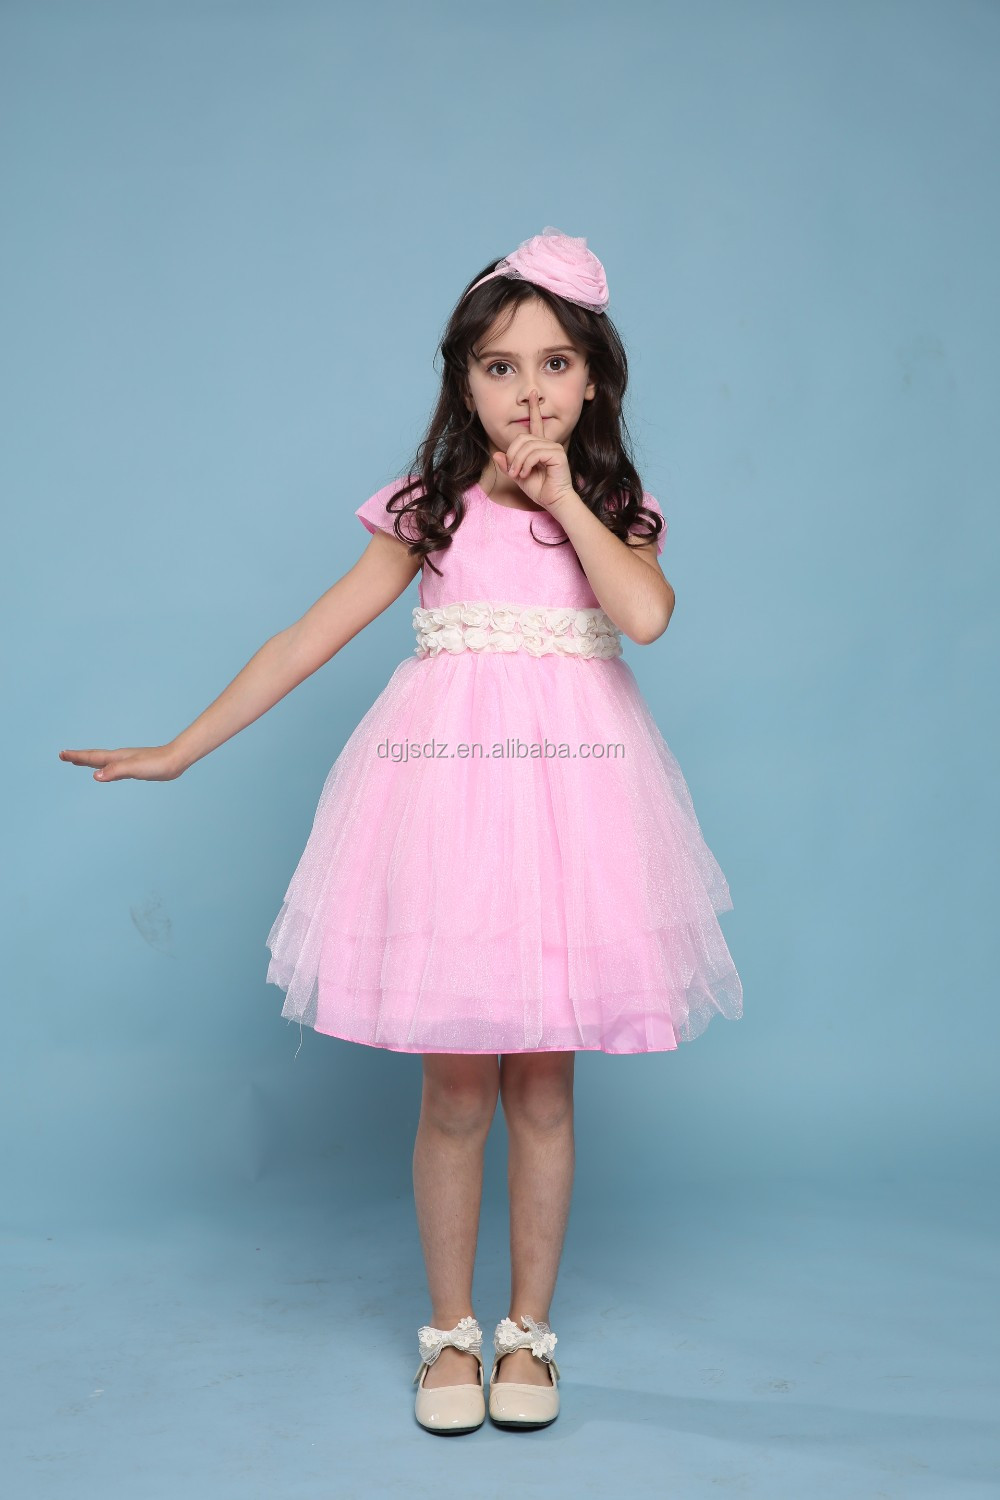 Dress Designs Teenage Girls New Model Frocks Dresses Kids Princess - Wedding Dresses For Teenage Girl